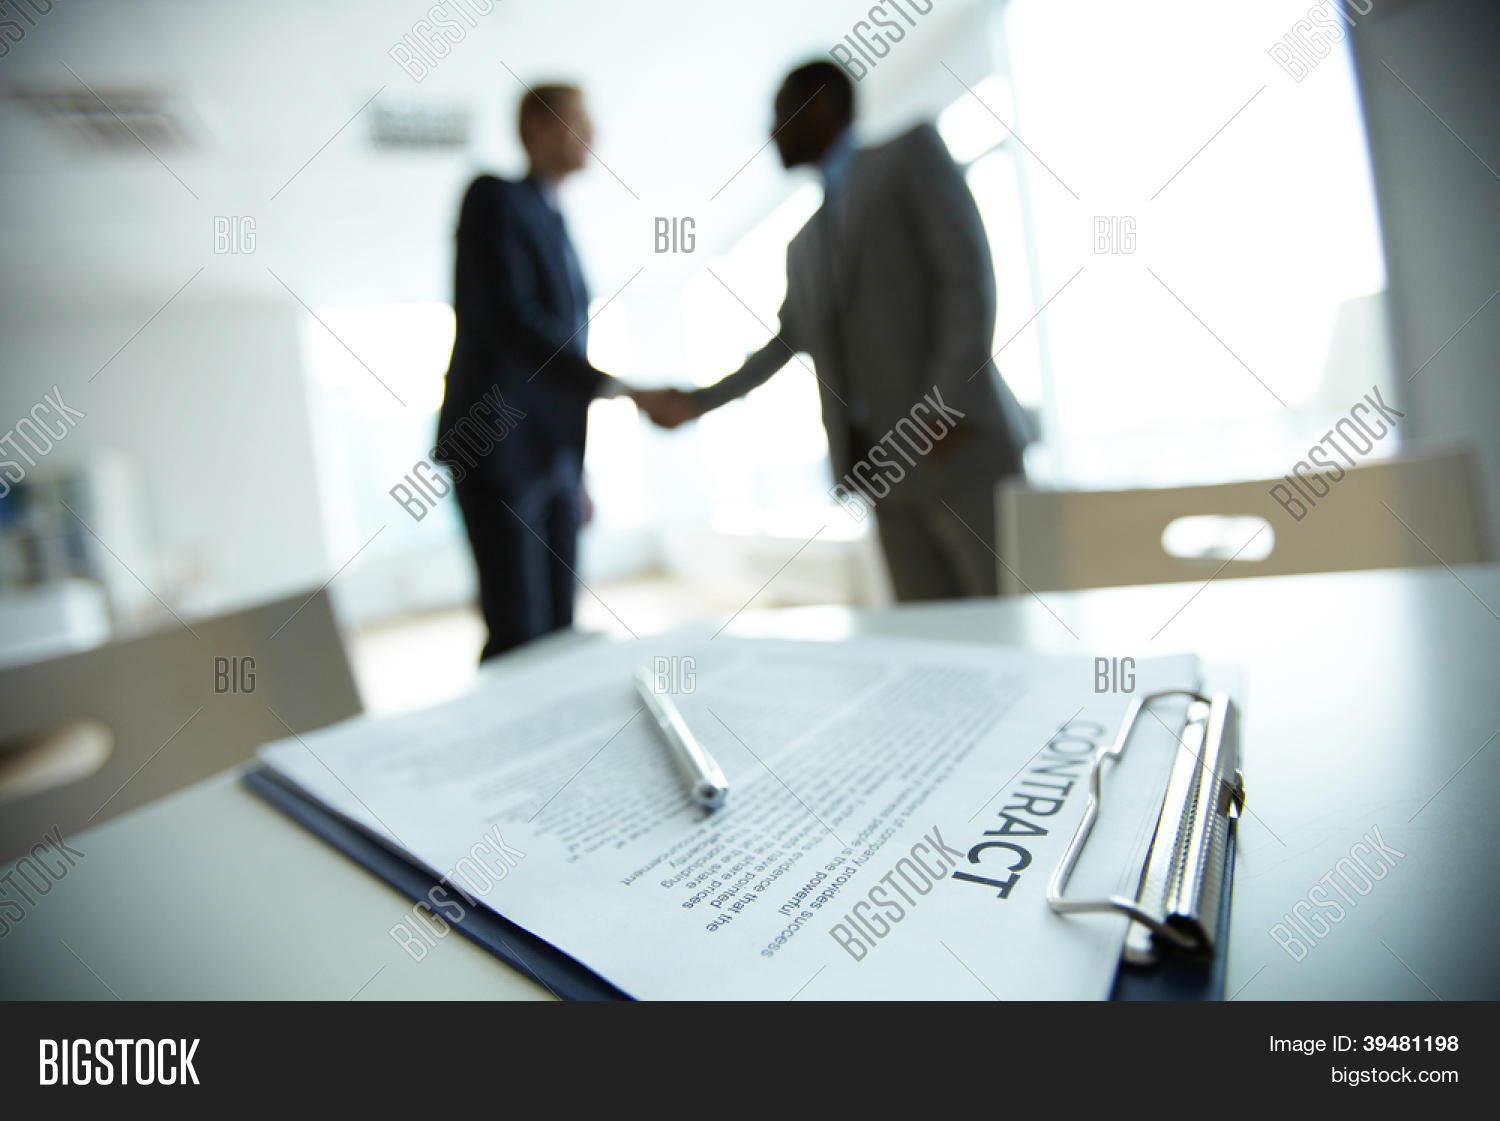 Image of business contract on background of two employees – Business Contract